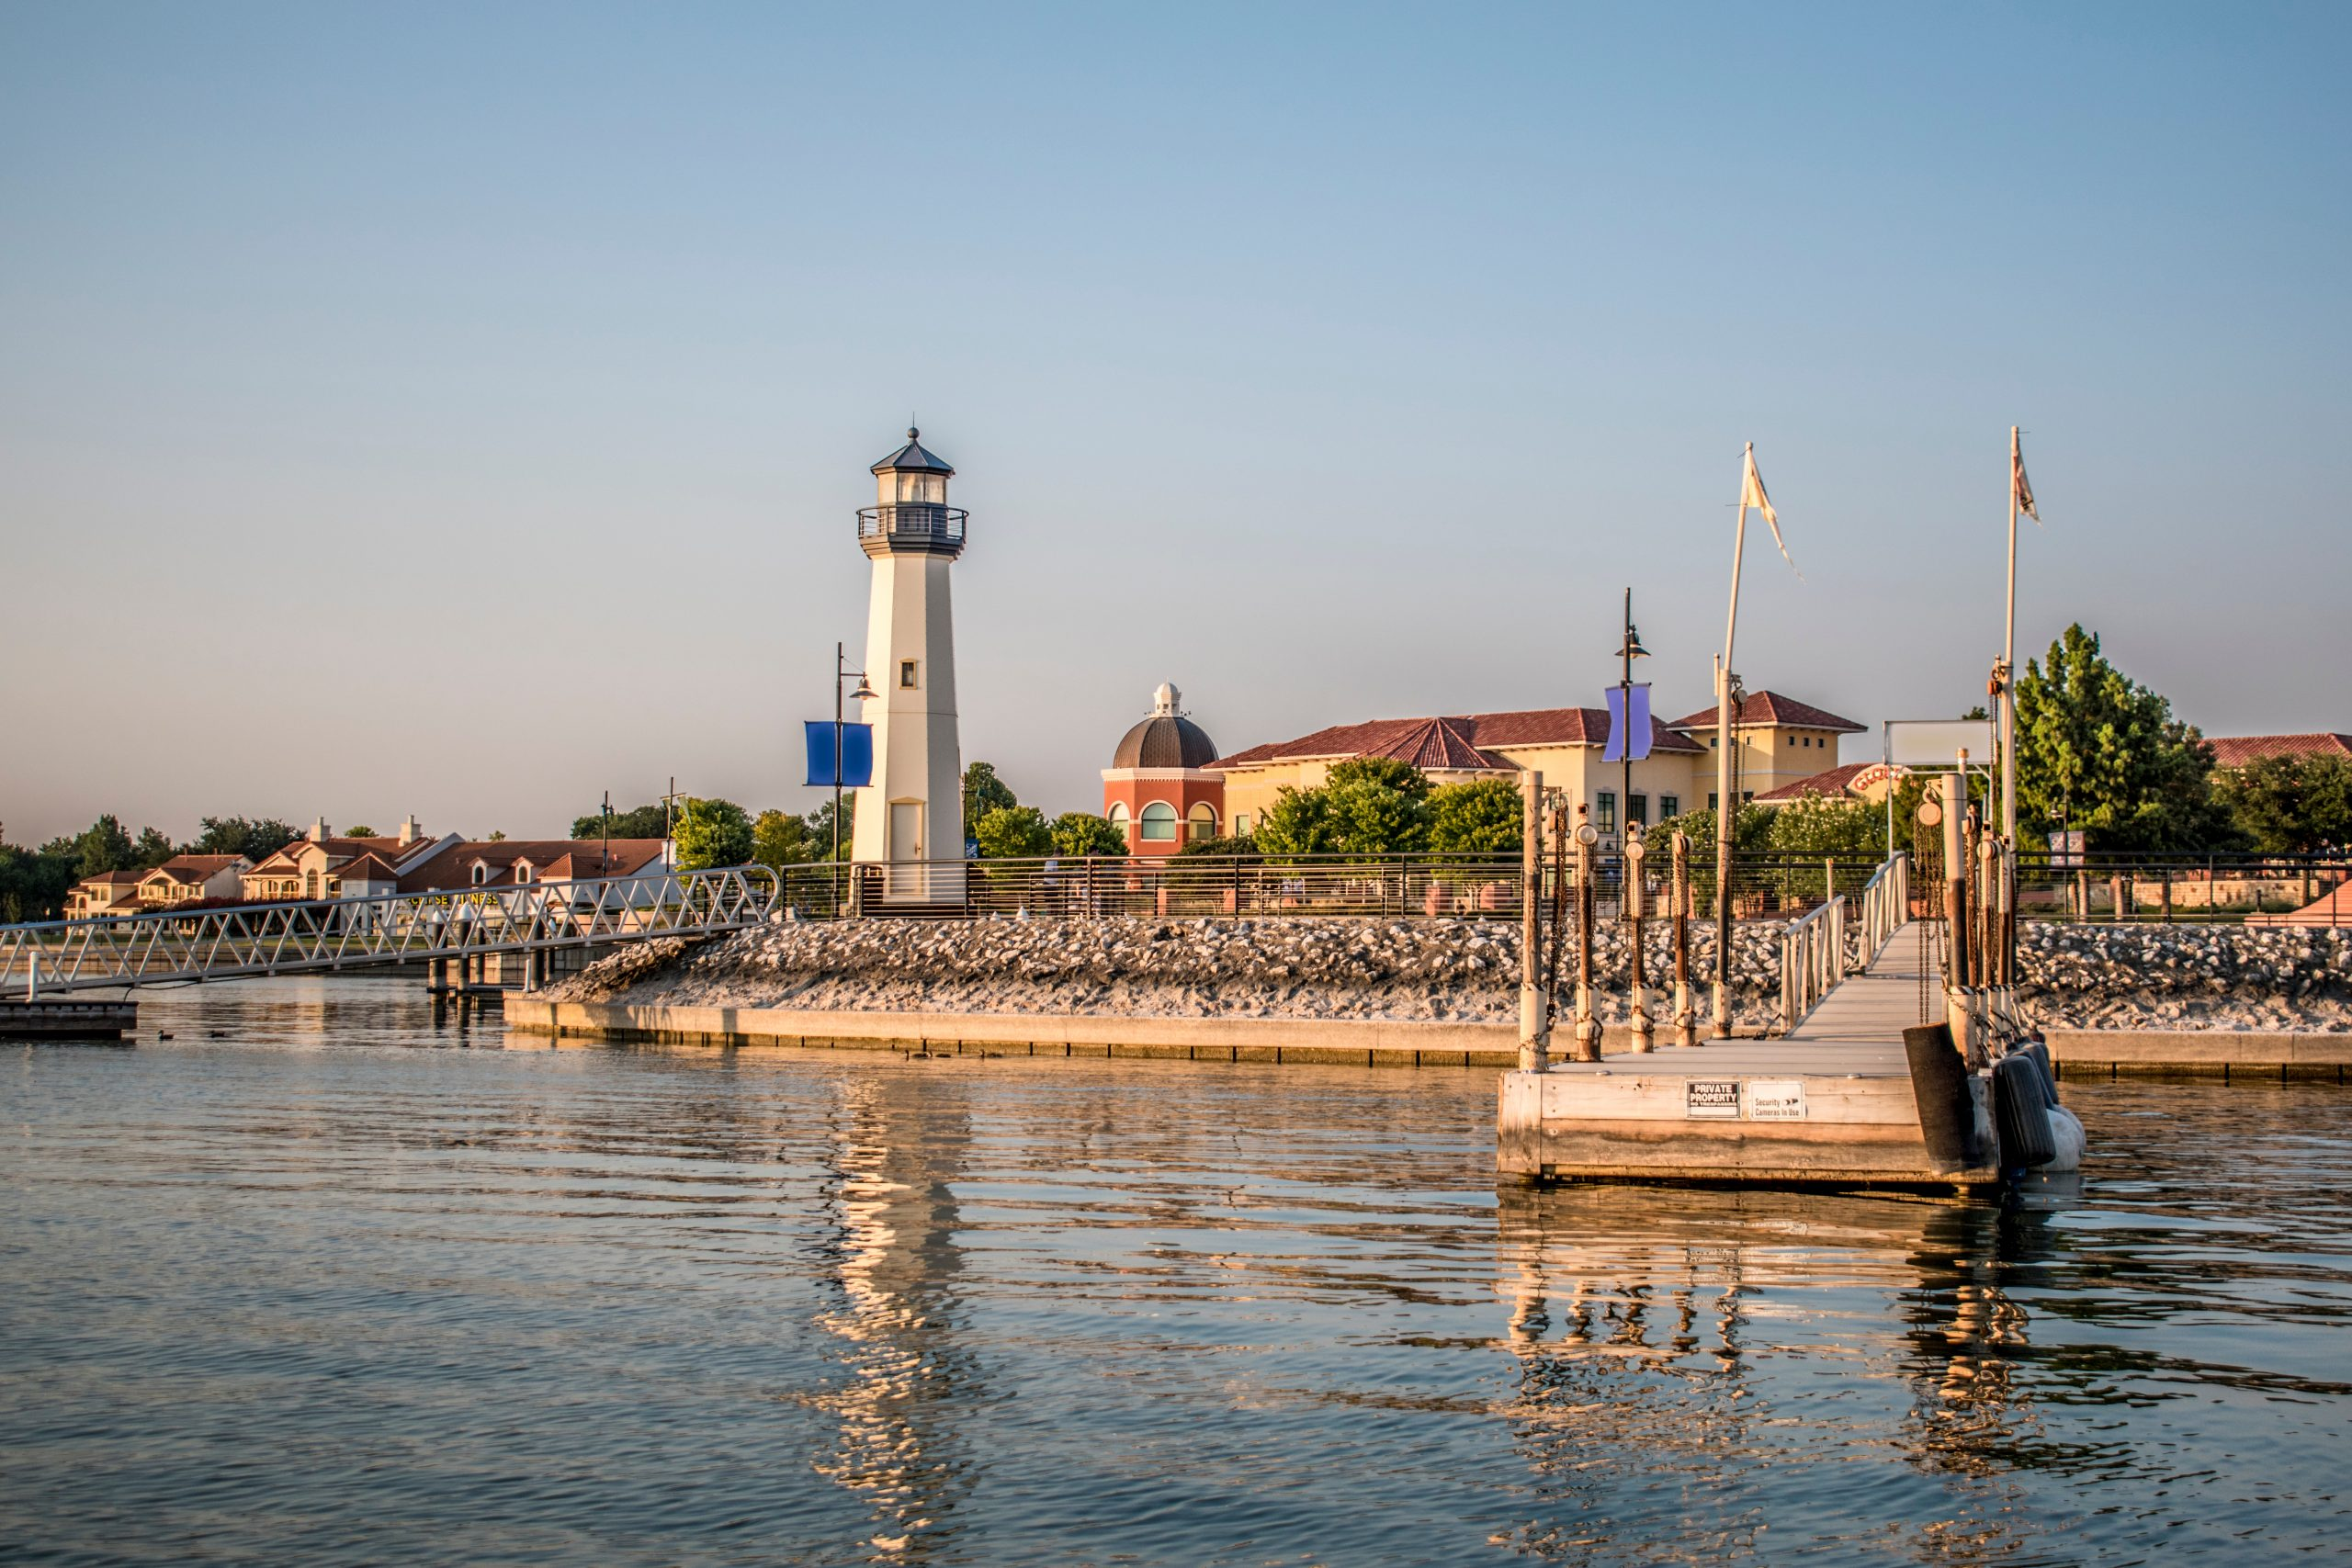 pier with lighthouse at ray hubbard lake, one of the best lakes in dallas texas